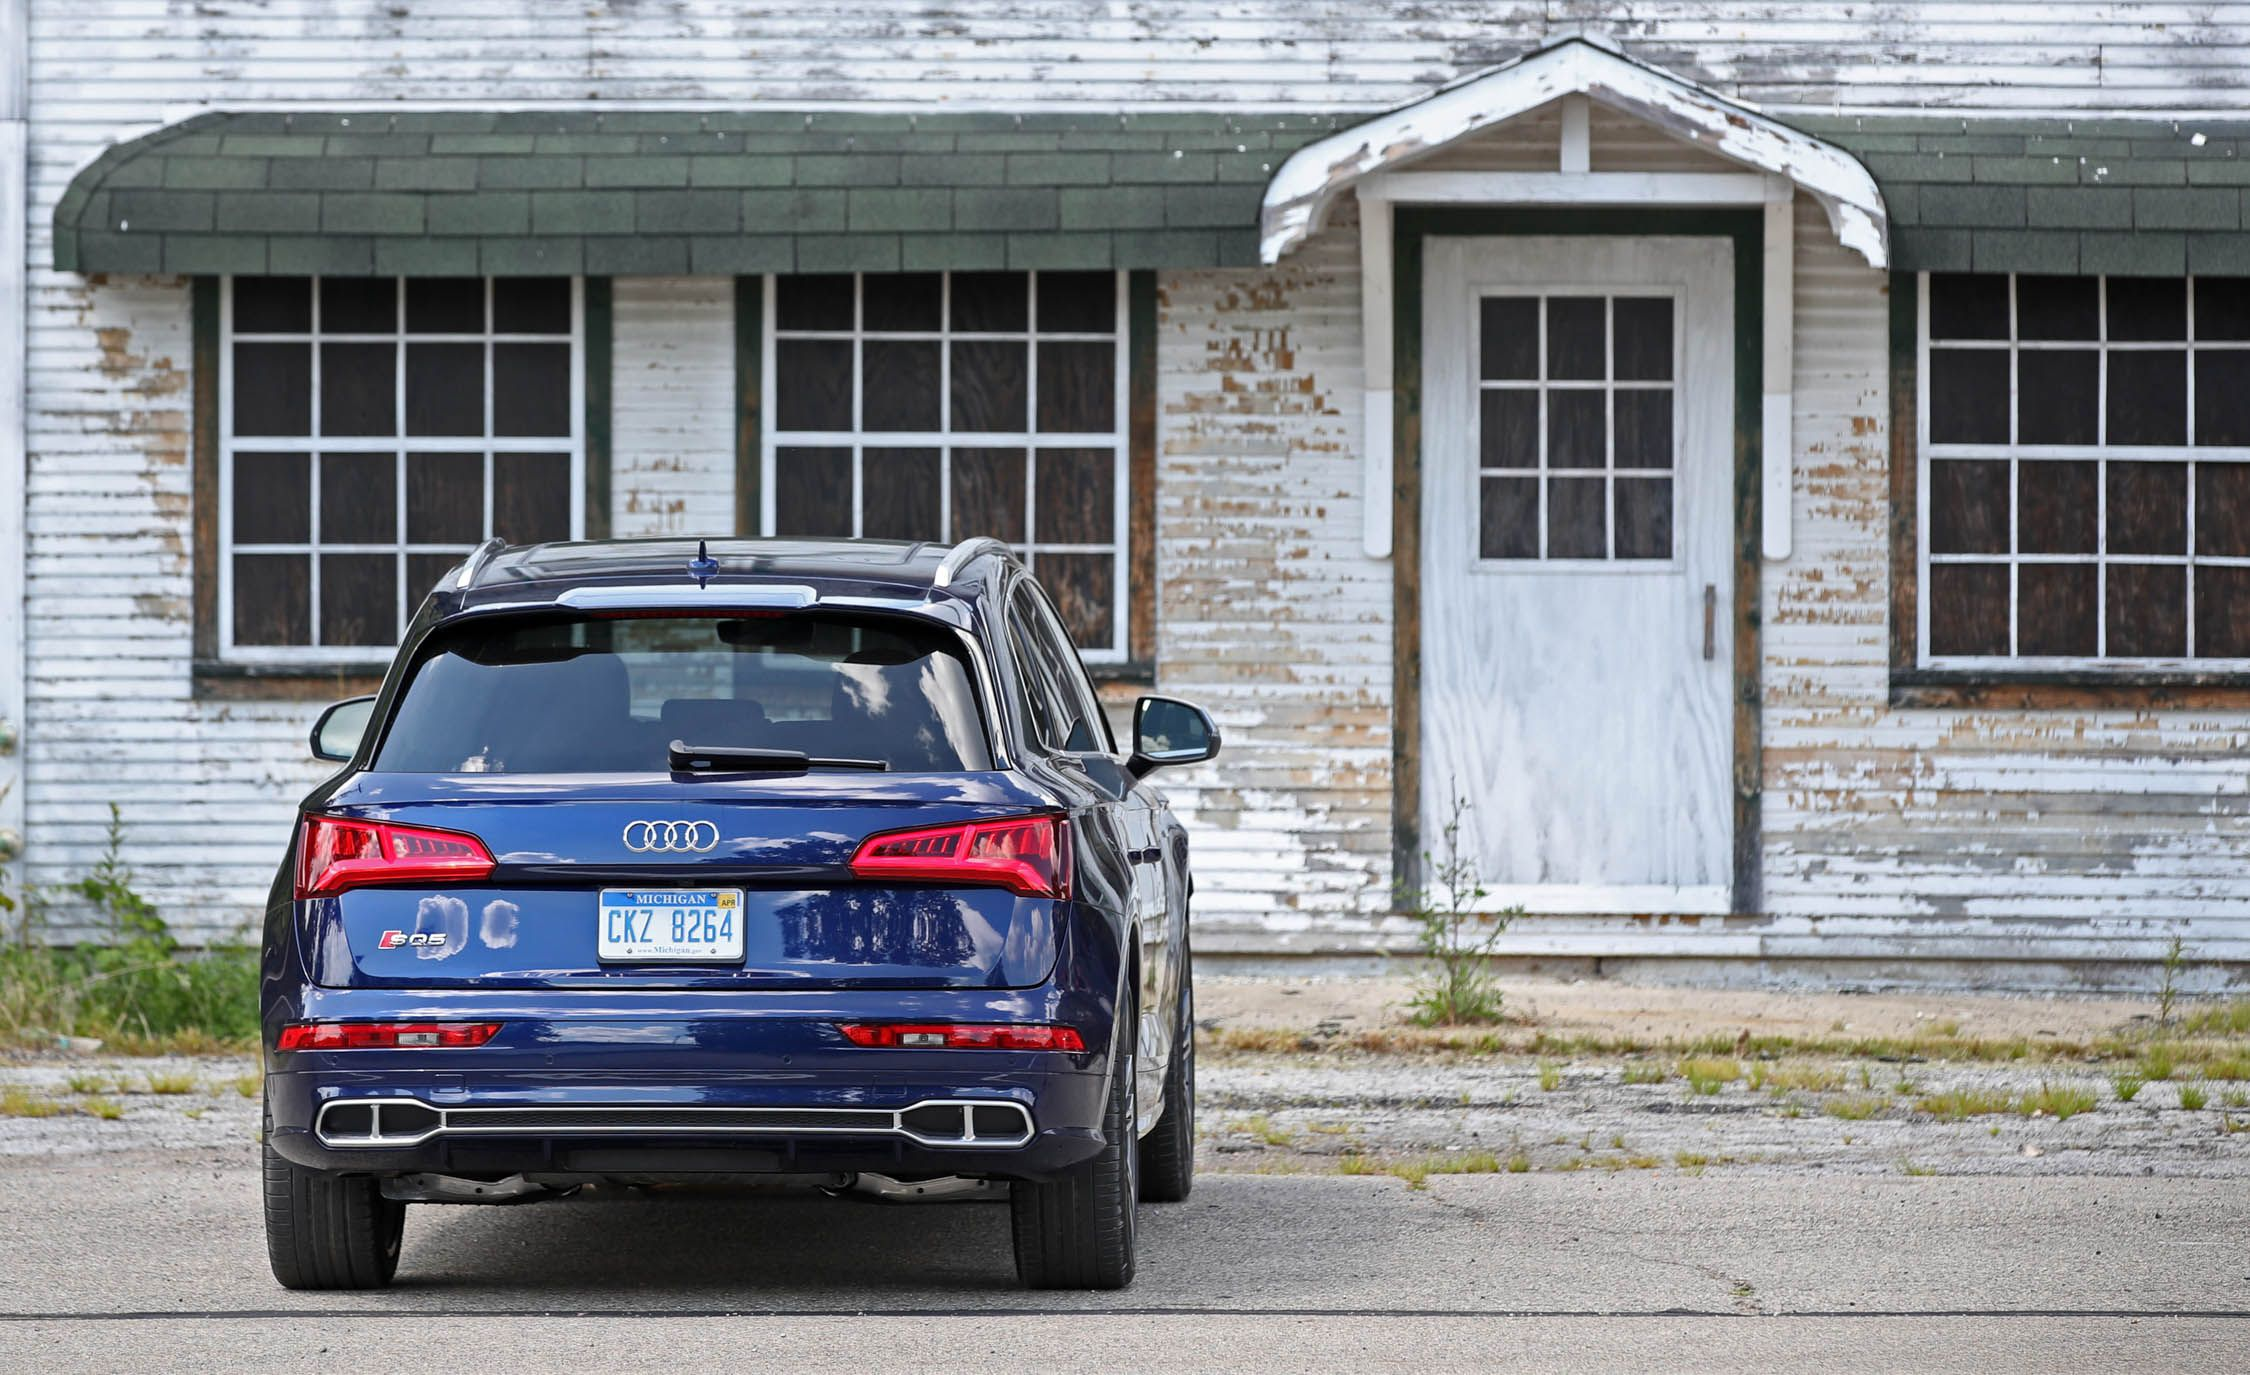 2018 Audi SQ5 Cargo Space and Storage Review